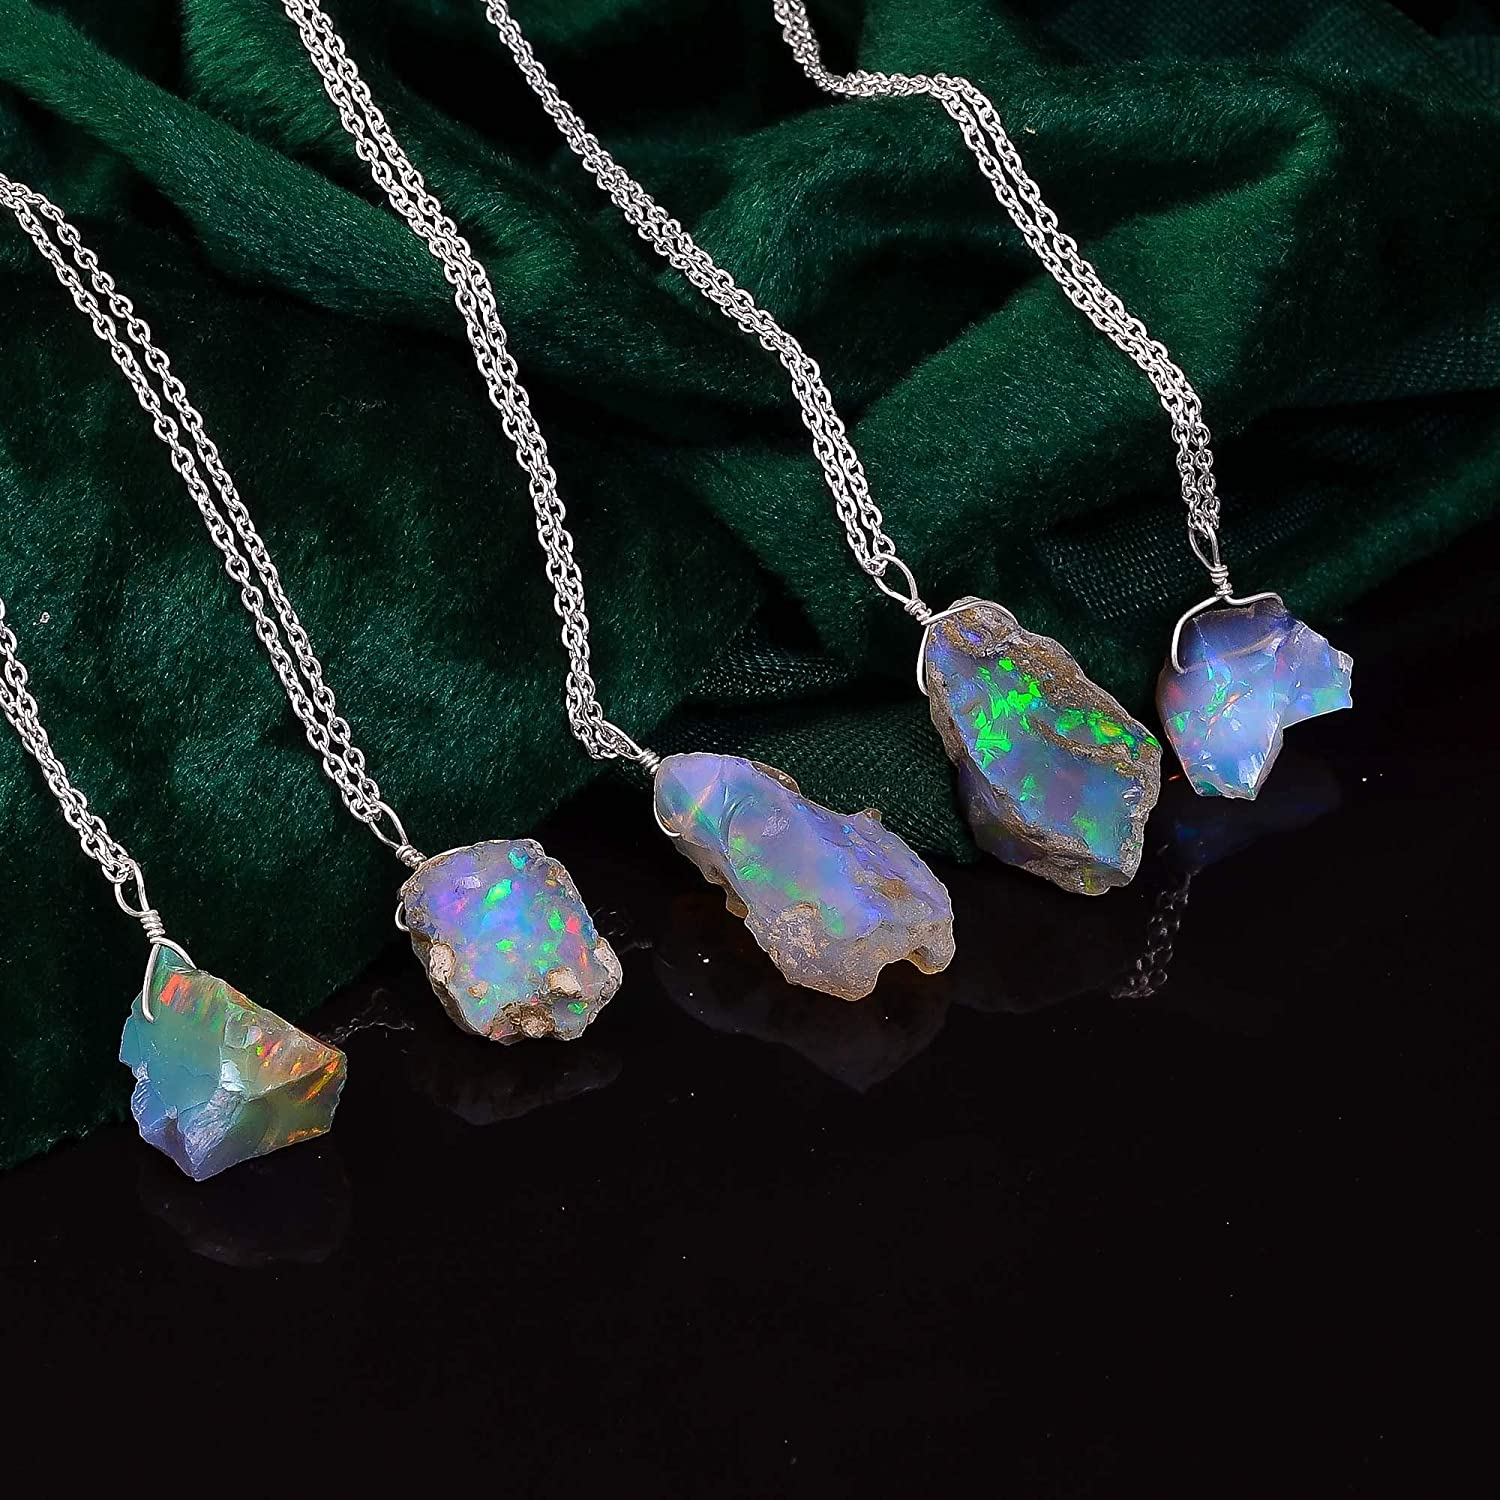 Necklaces for Women in Rhodium Plated 925 Sterling Silver 18 inch Rough Crystals Fire Opal AA+ Genuine Raw Ethiopian Opal Gemstone Dainty Necklace Healing Stones October Birthstone